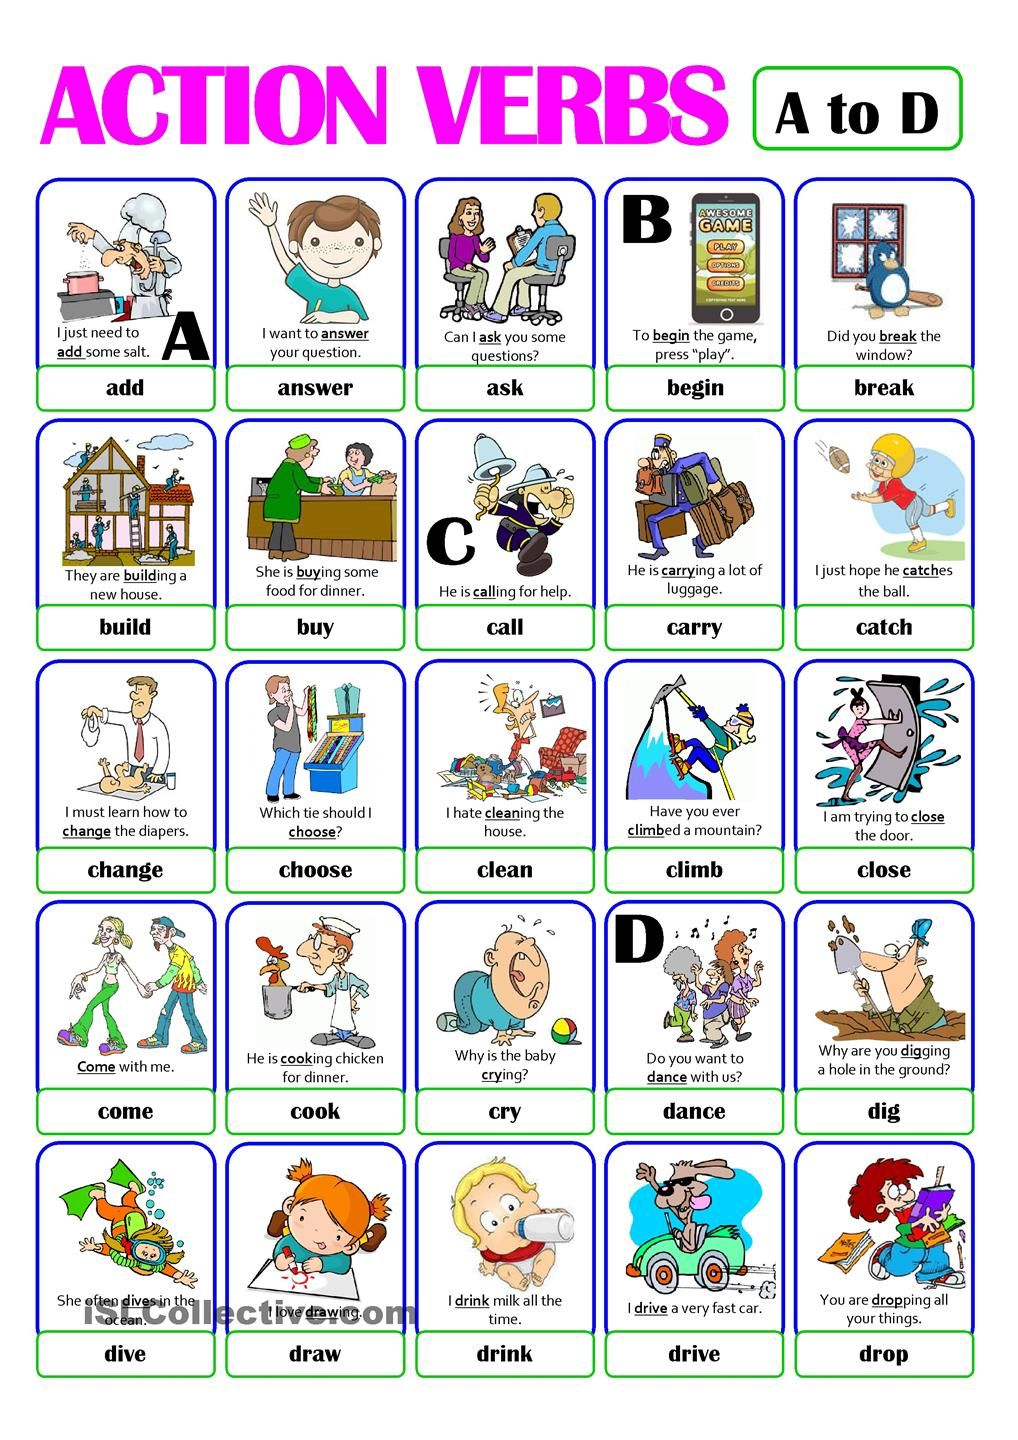 hight resolution of PICTIONARY - ACTION VERB SET (1) - from A to D   Action verbs